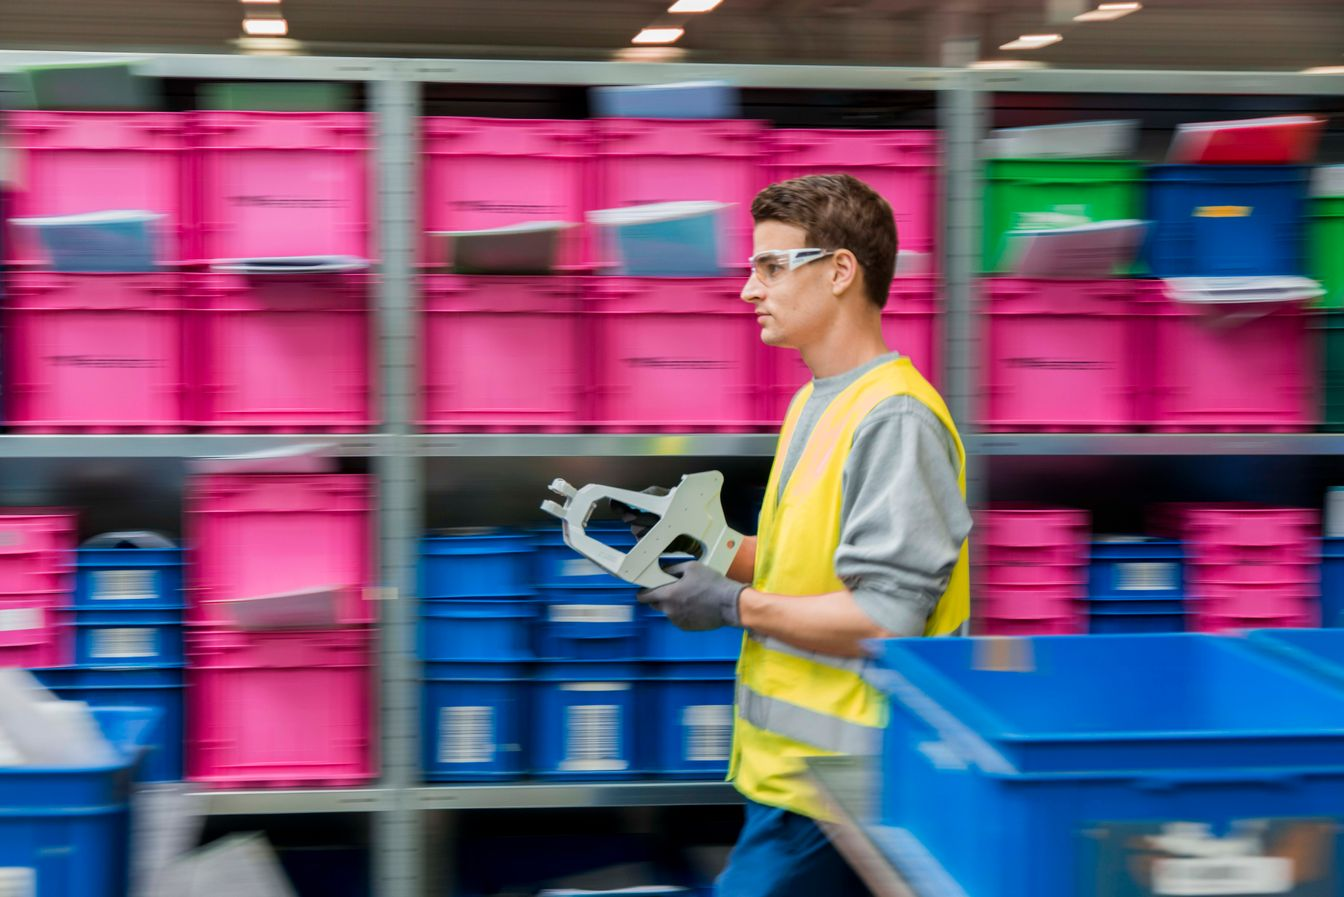 Just-in-time deliveries at thyssenkrupp Aerospace